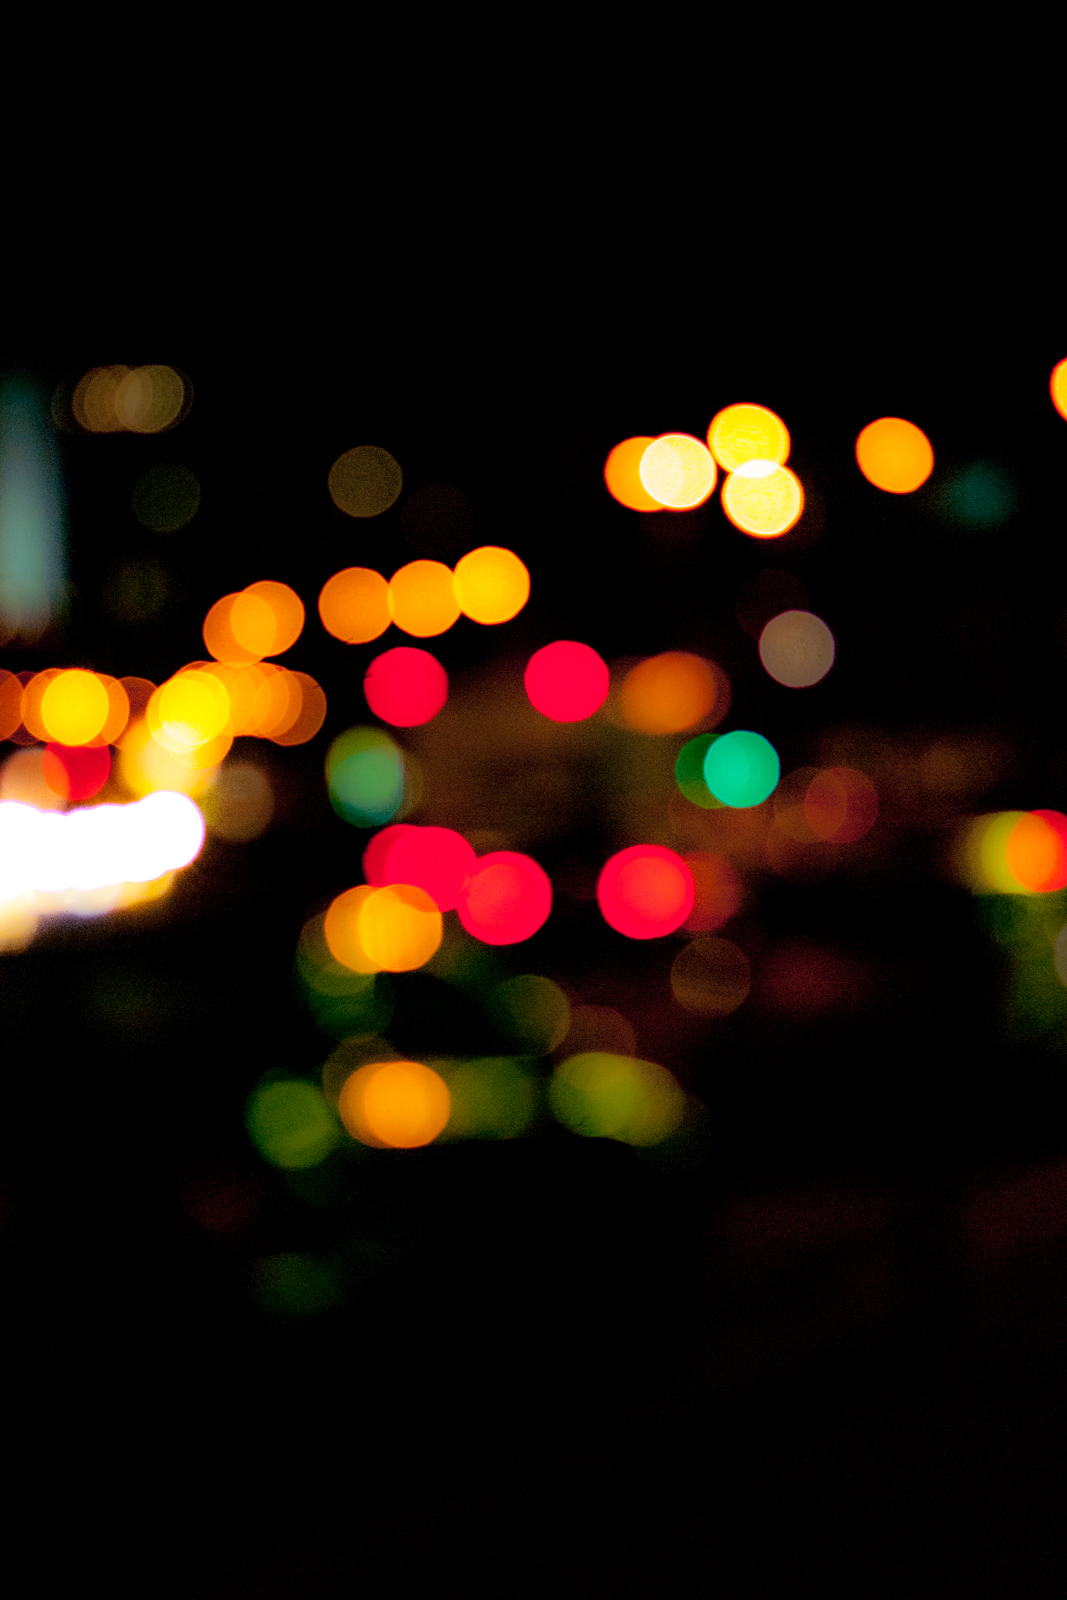 Lights 1 von 4 - Citylights